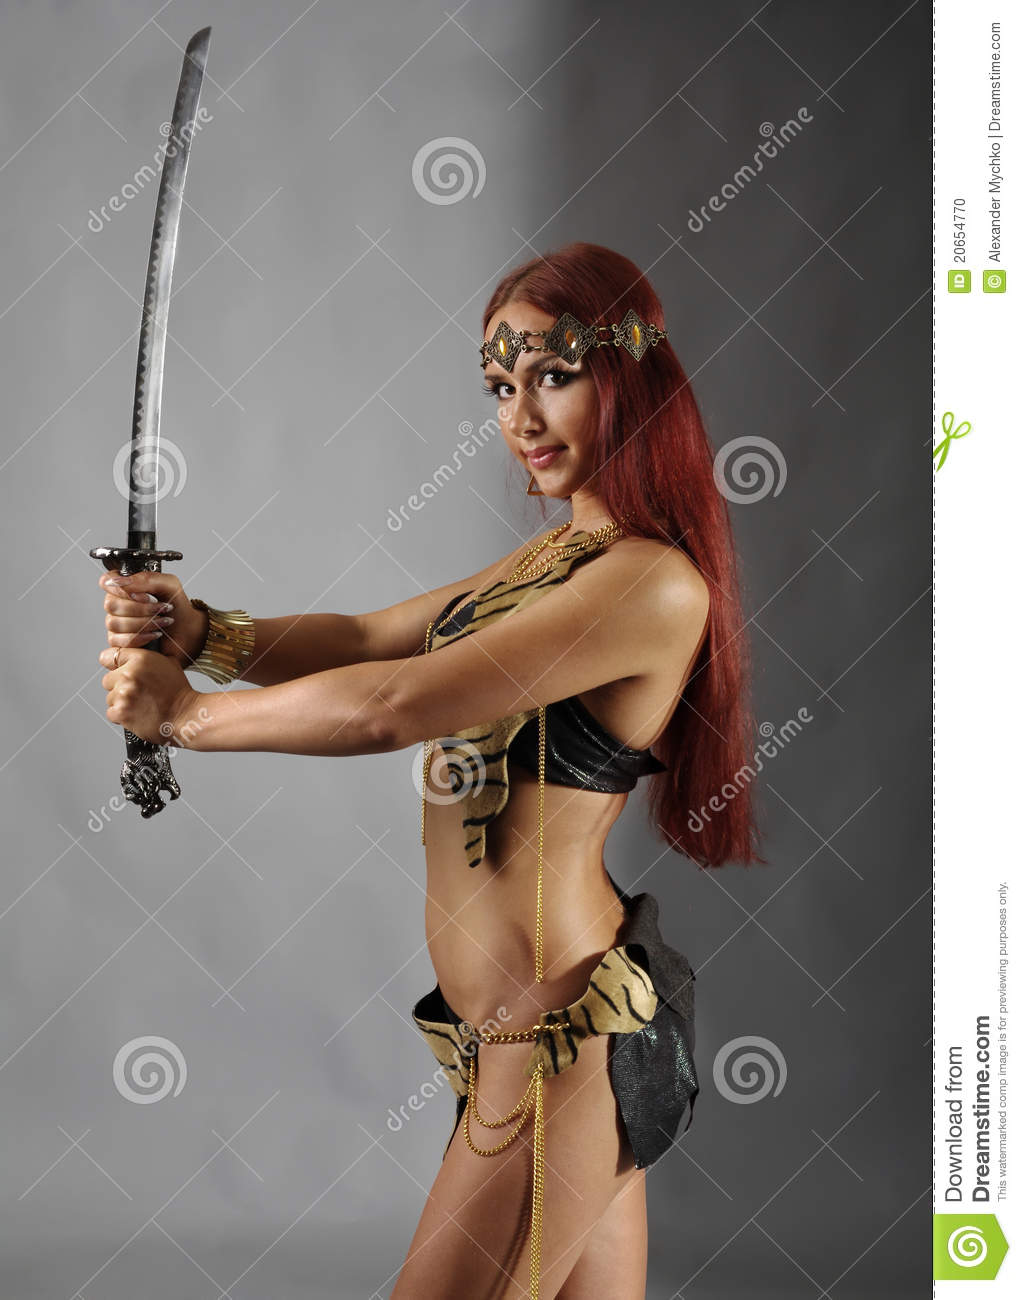 woman holding sword - HD 1022×1300